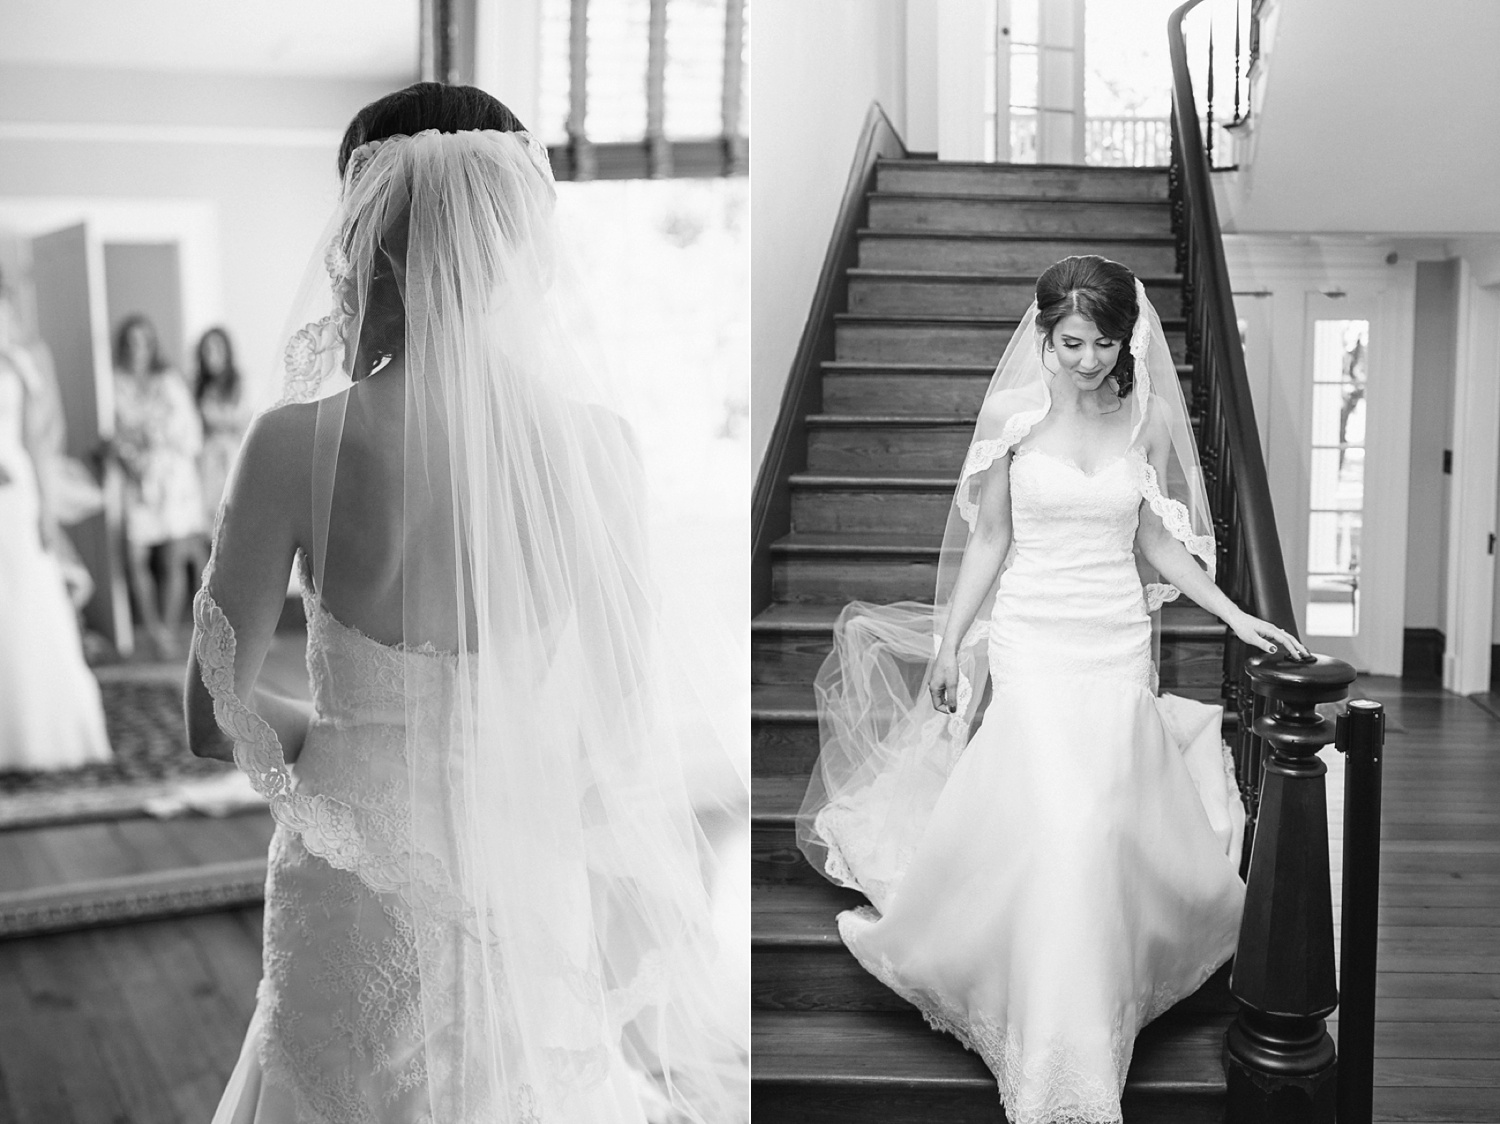 Lindsey_A_Miller_photography_charleston_mcleod_plantation_wedding_row_of_oaks_southern_classic_fall_spanish_moss_historic_home_033.jpg